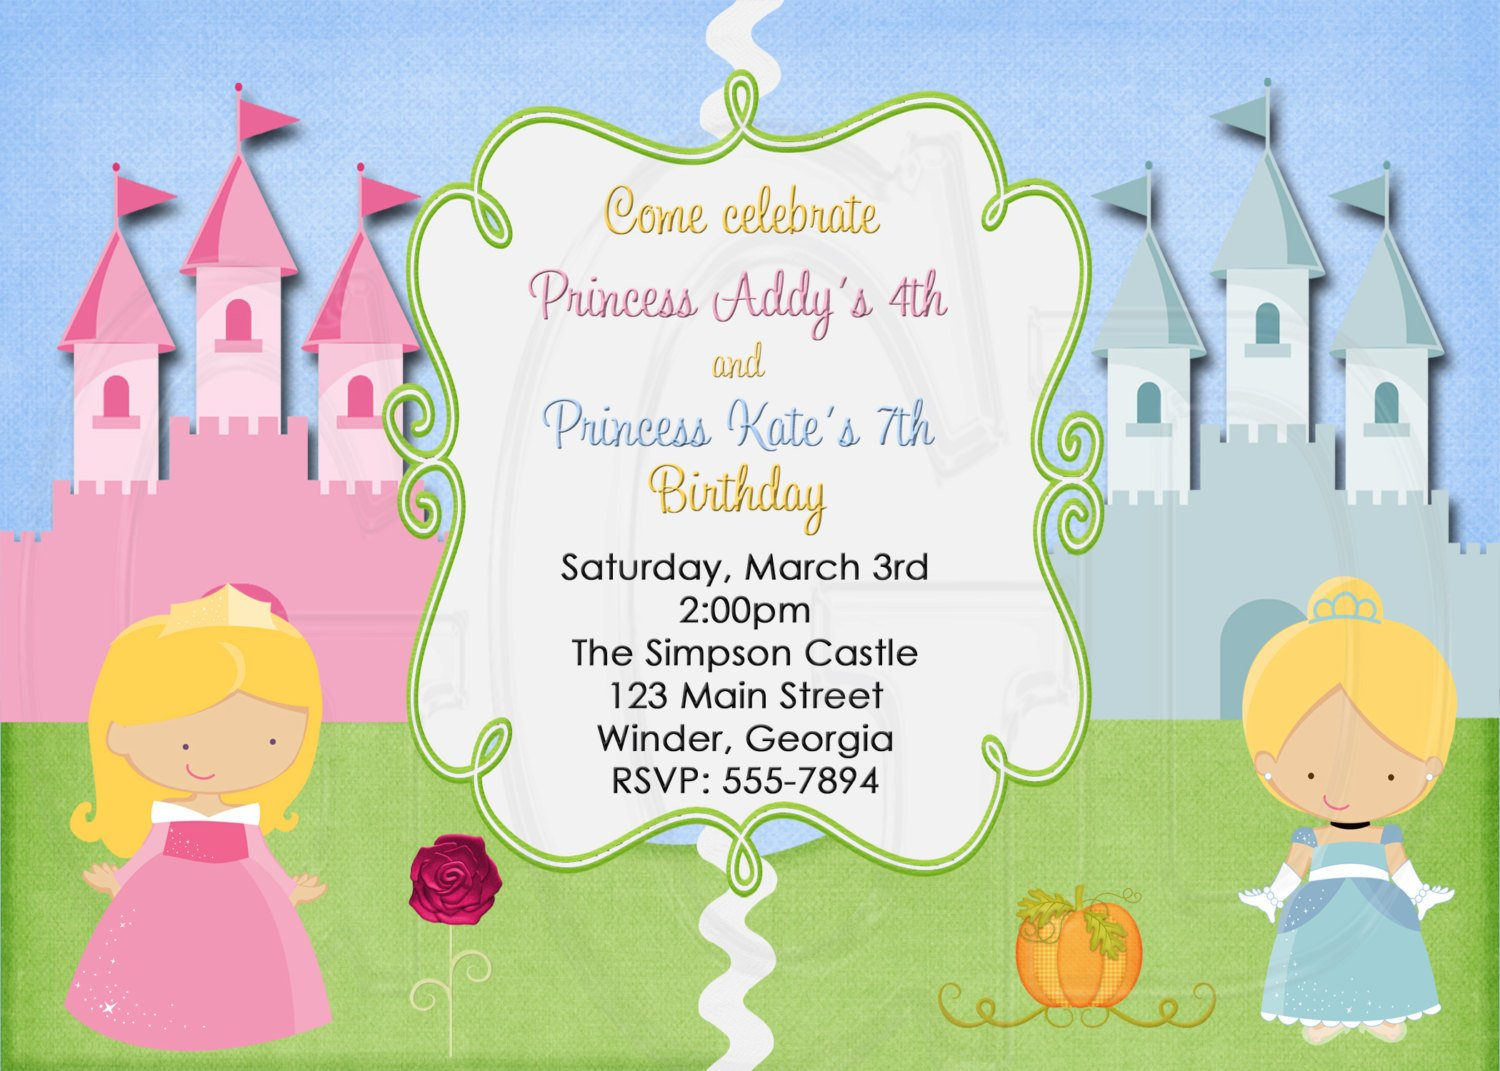 Joint birthday party invitations bagvania free printable princesses joint birthday party invitations stopboris